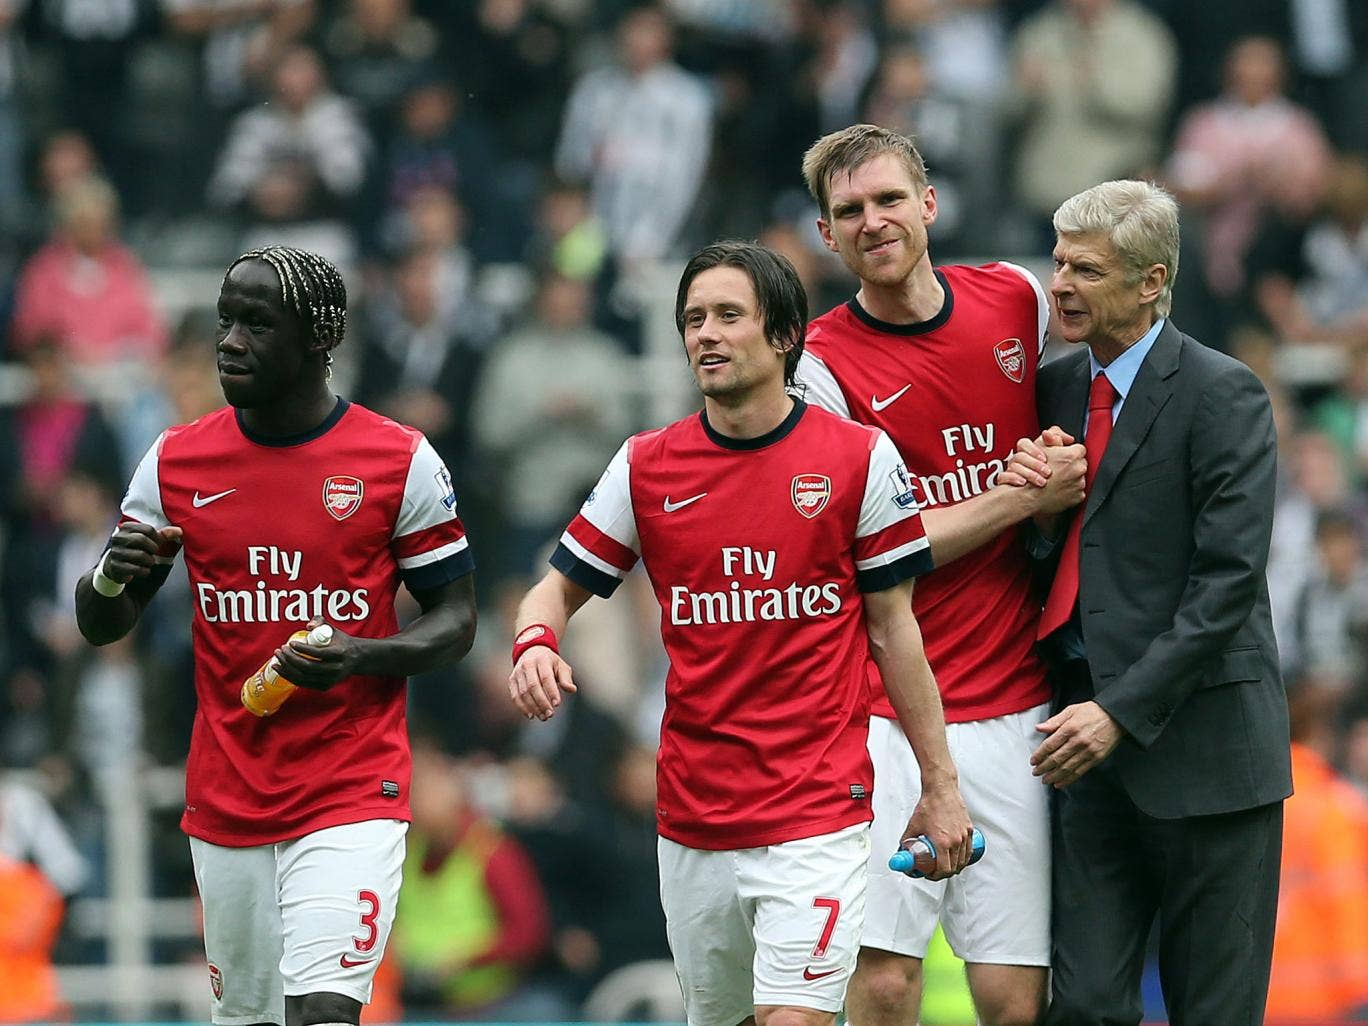 Bacary Sagna, Tomas Rosicky and Per Mertesacker could be handed new contracts by manager Arsene Wenger